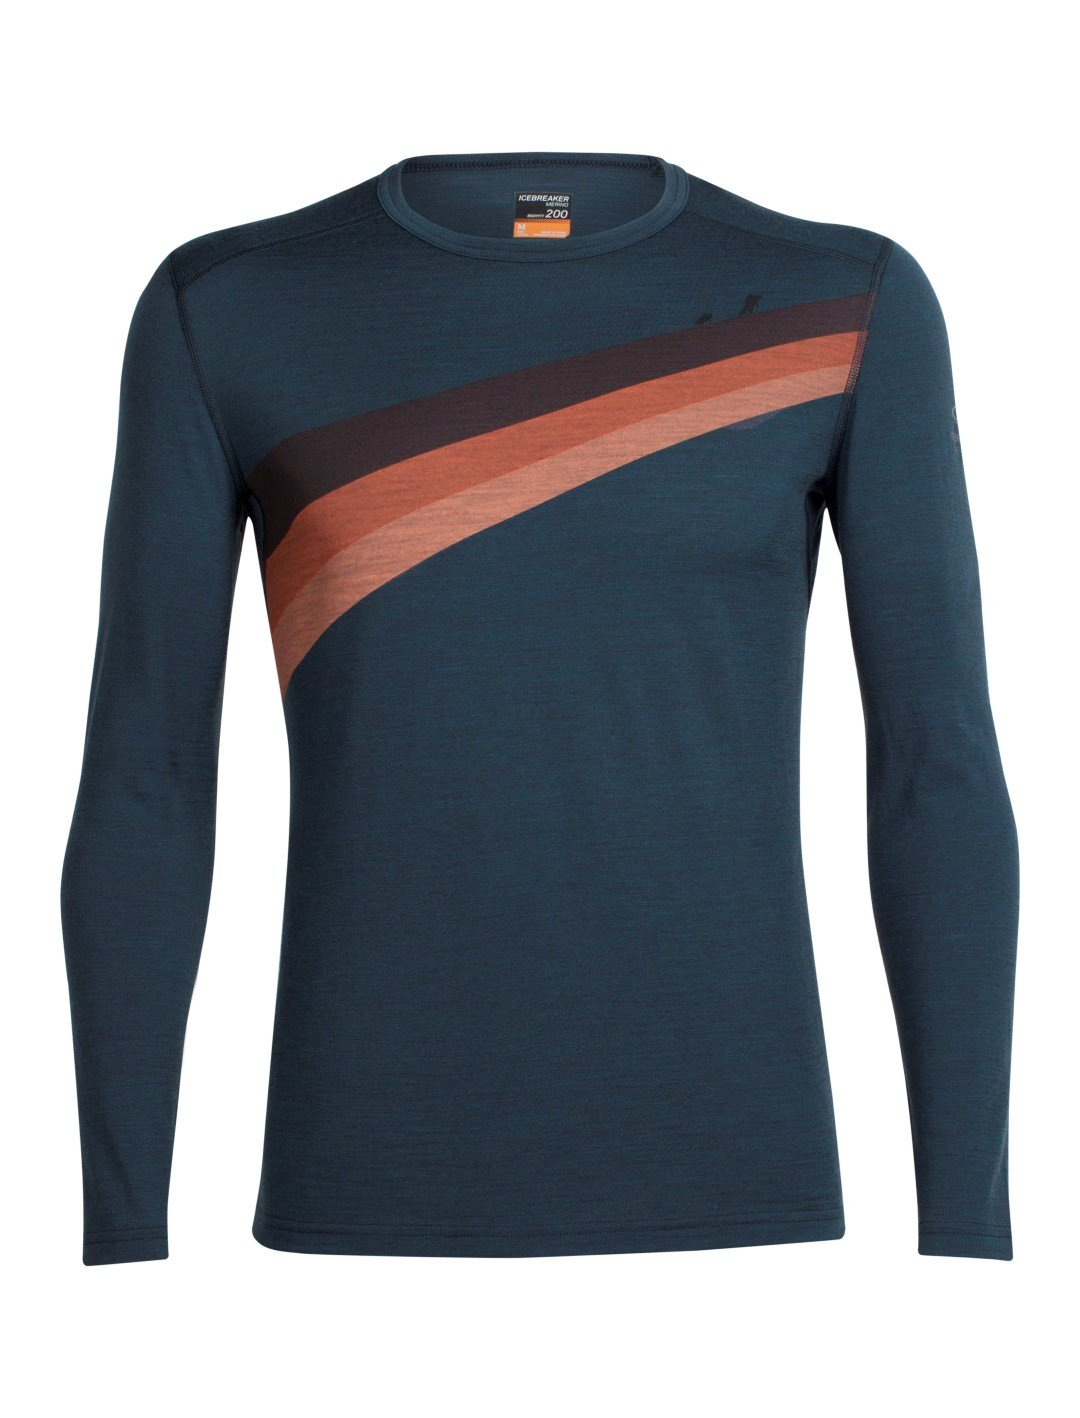 Icebreaker Merino Men's Oasis Long Sleeve Crewe With Graphic, Ascent Stripe - Nori Heather, Small by Icebreaker Merino